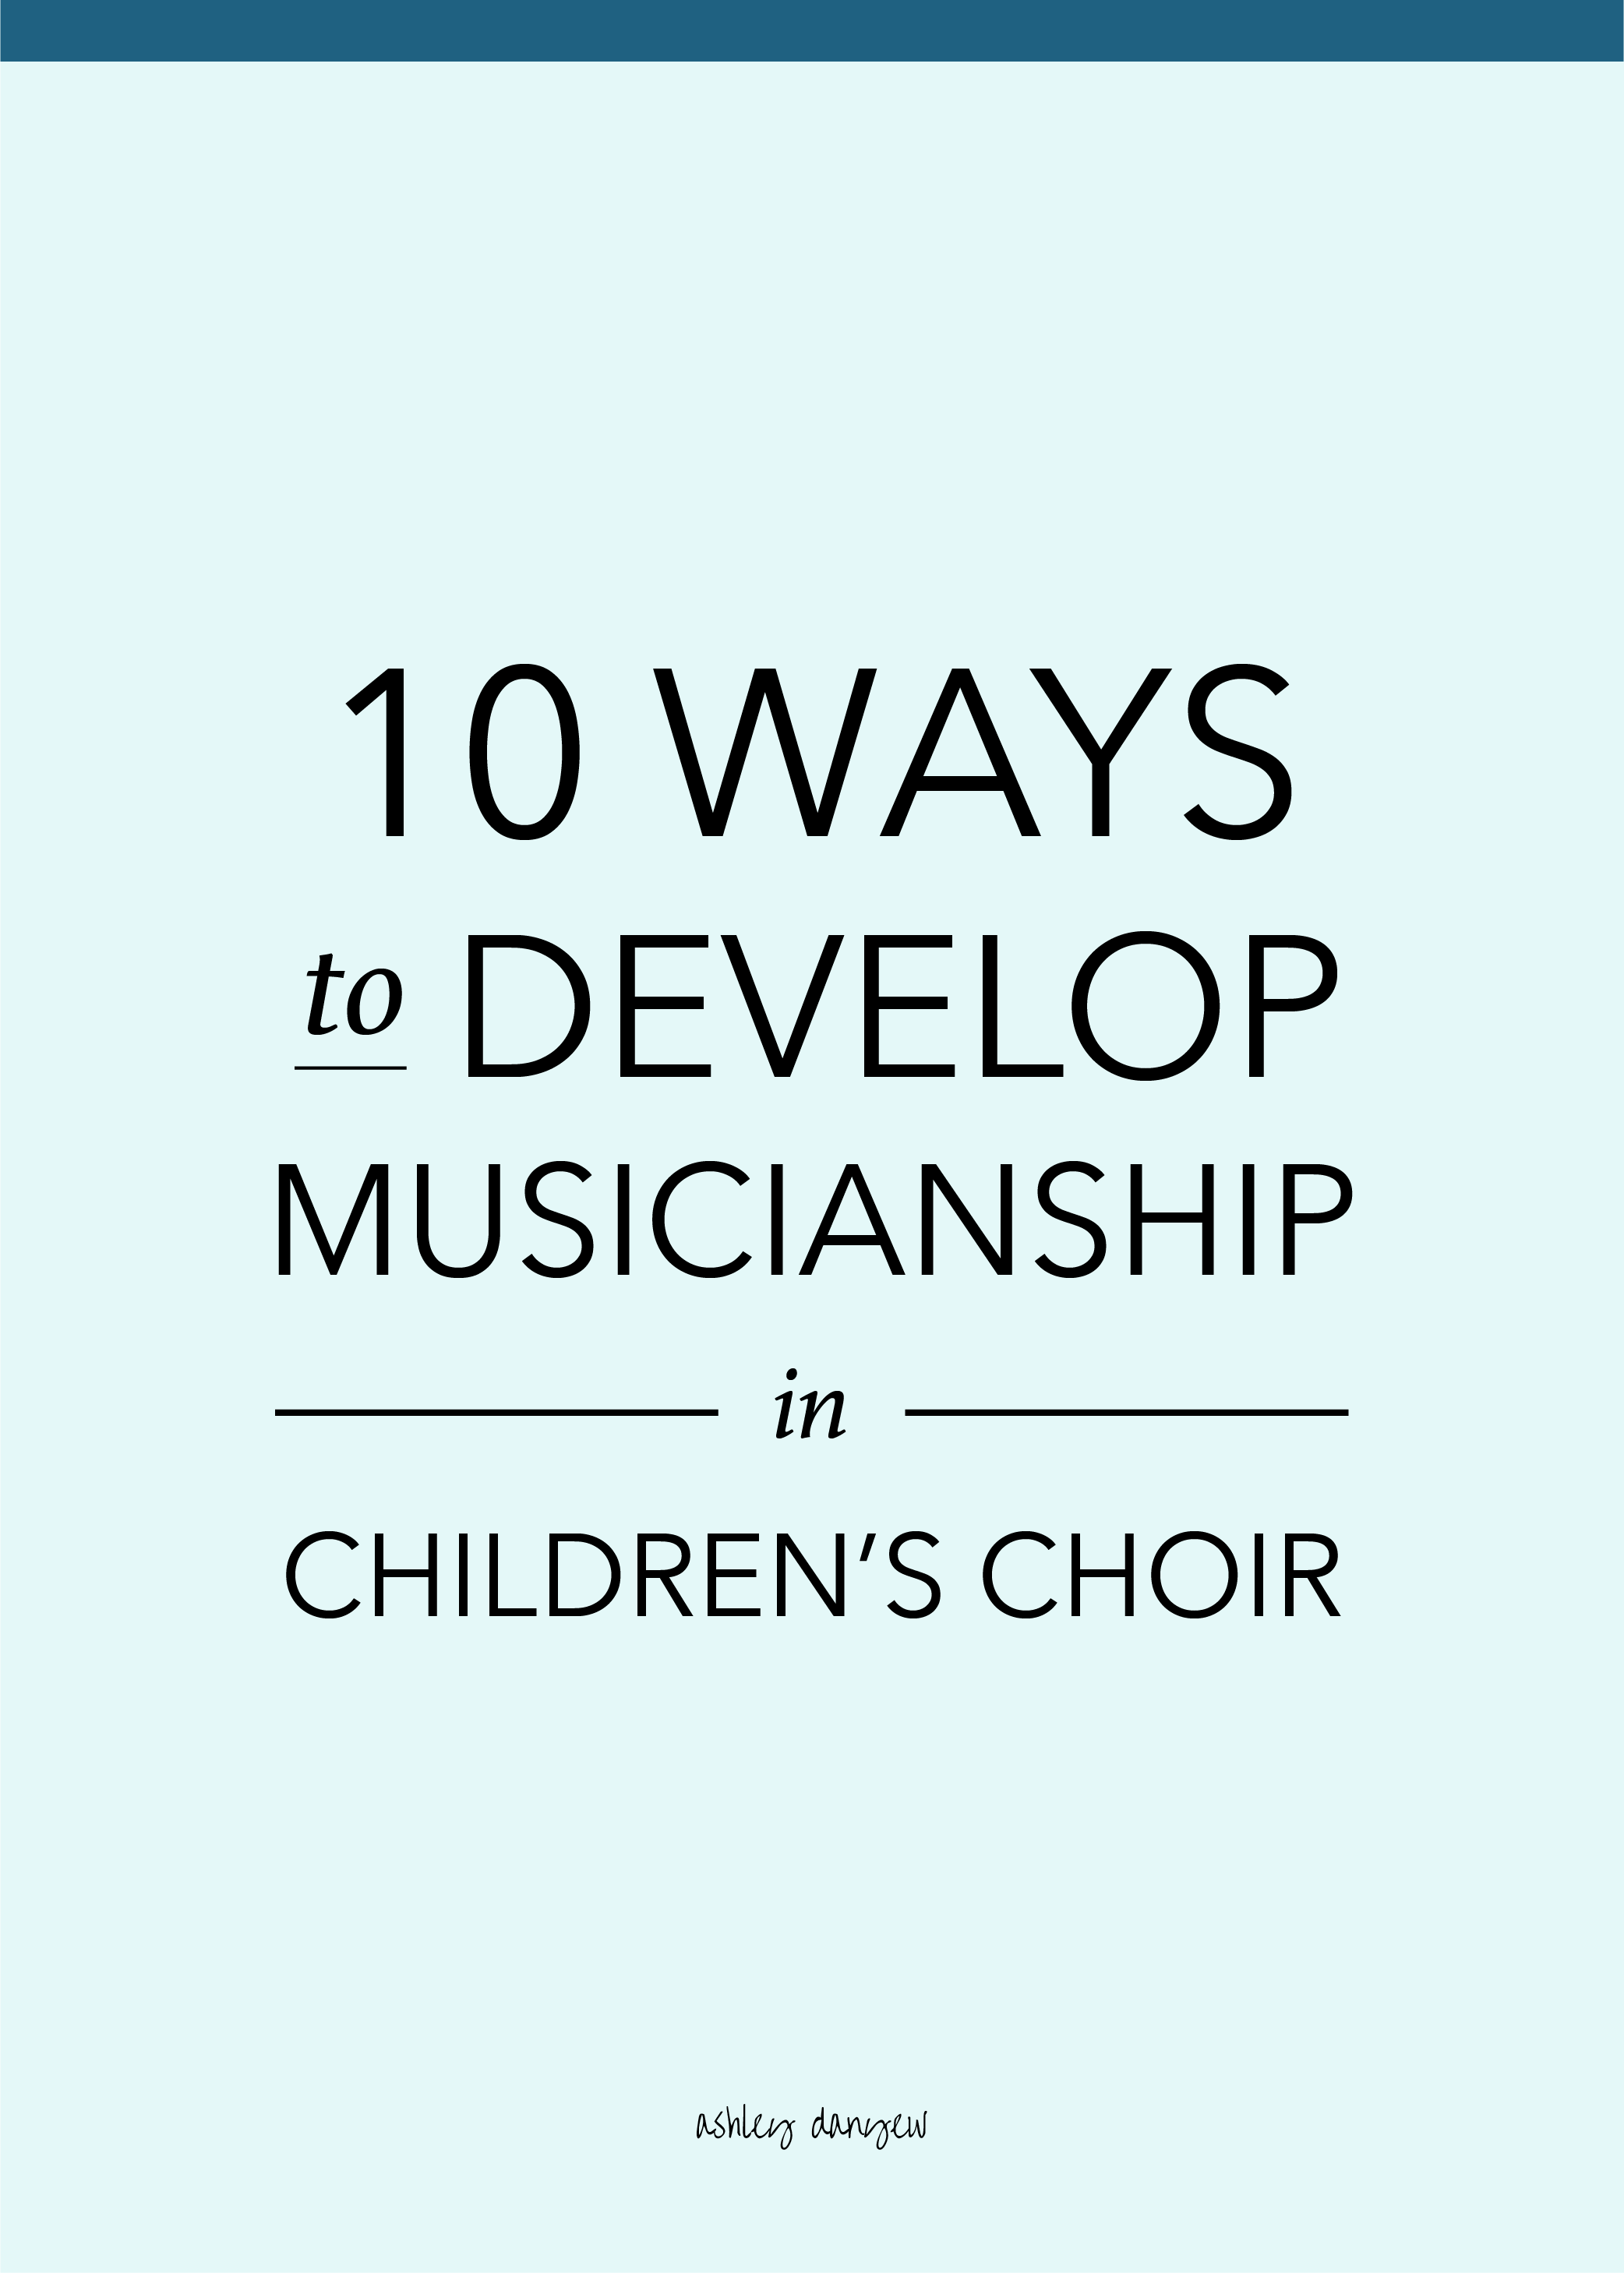 10 Ways to Develop Musicianship in Children's Choir-07.png